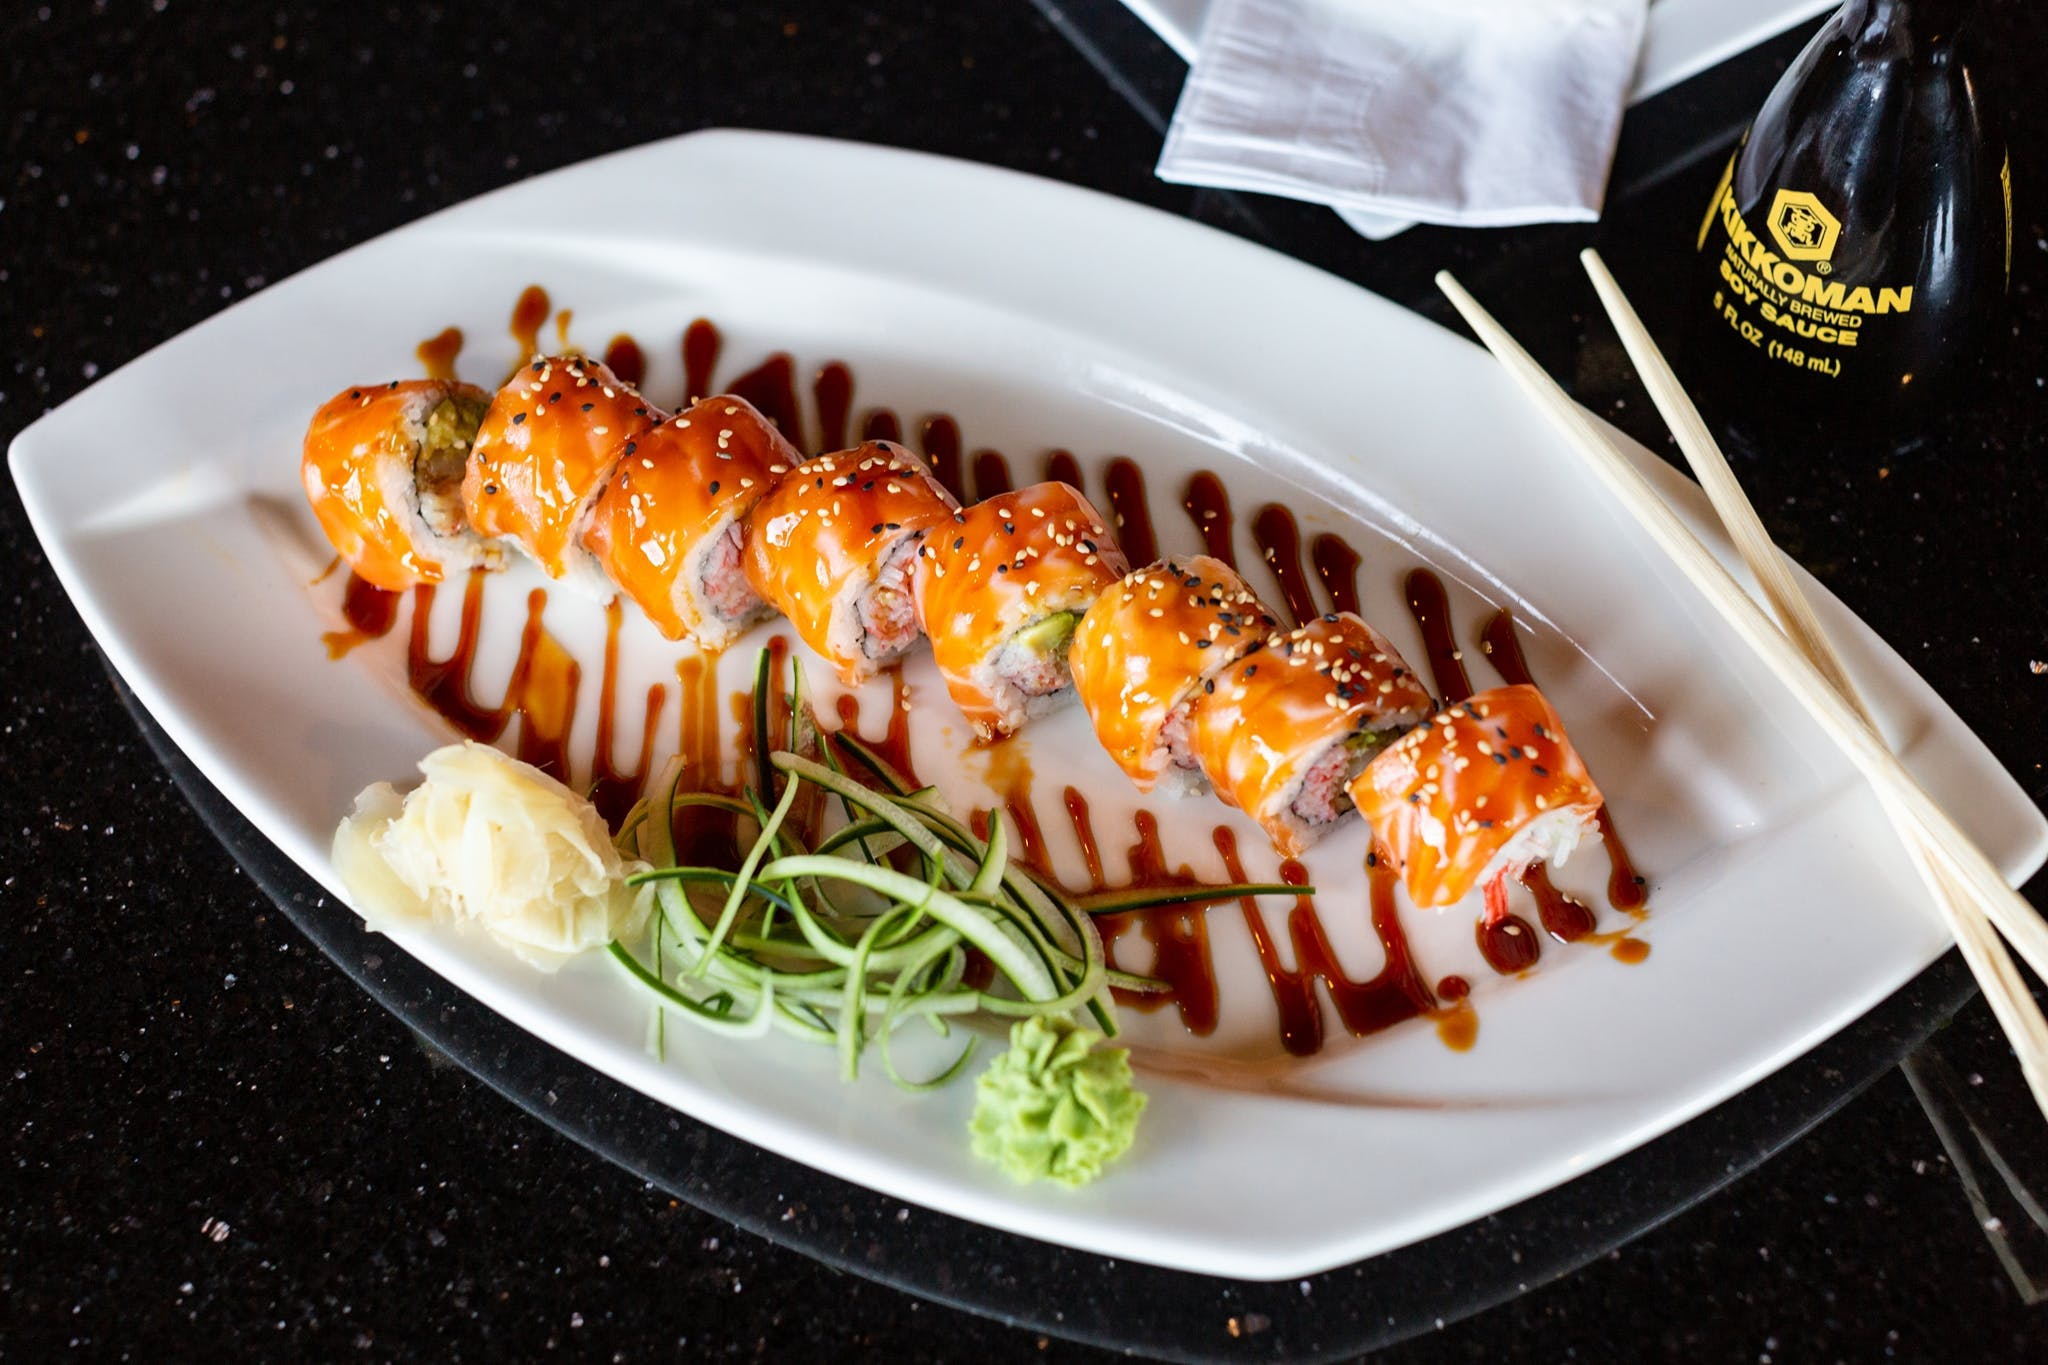 BMW Roll from Oriental Bistro & Grill in Lawrence, KS